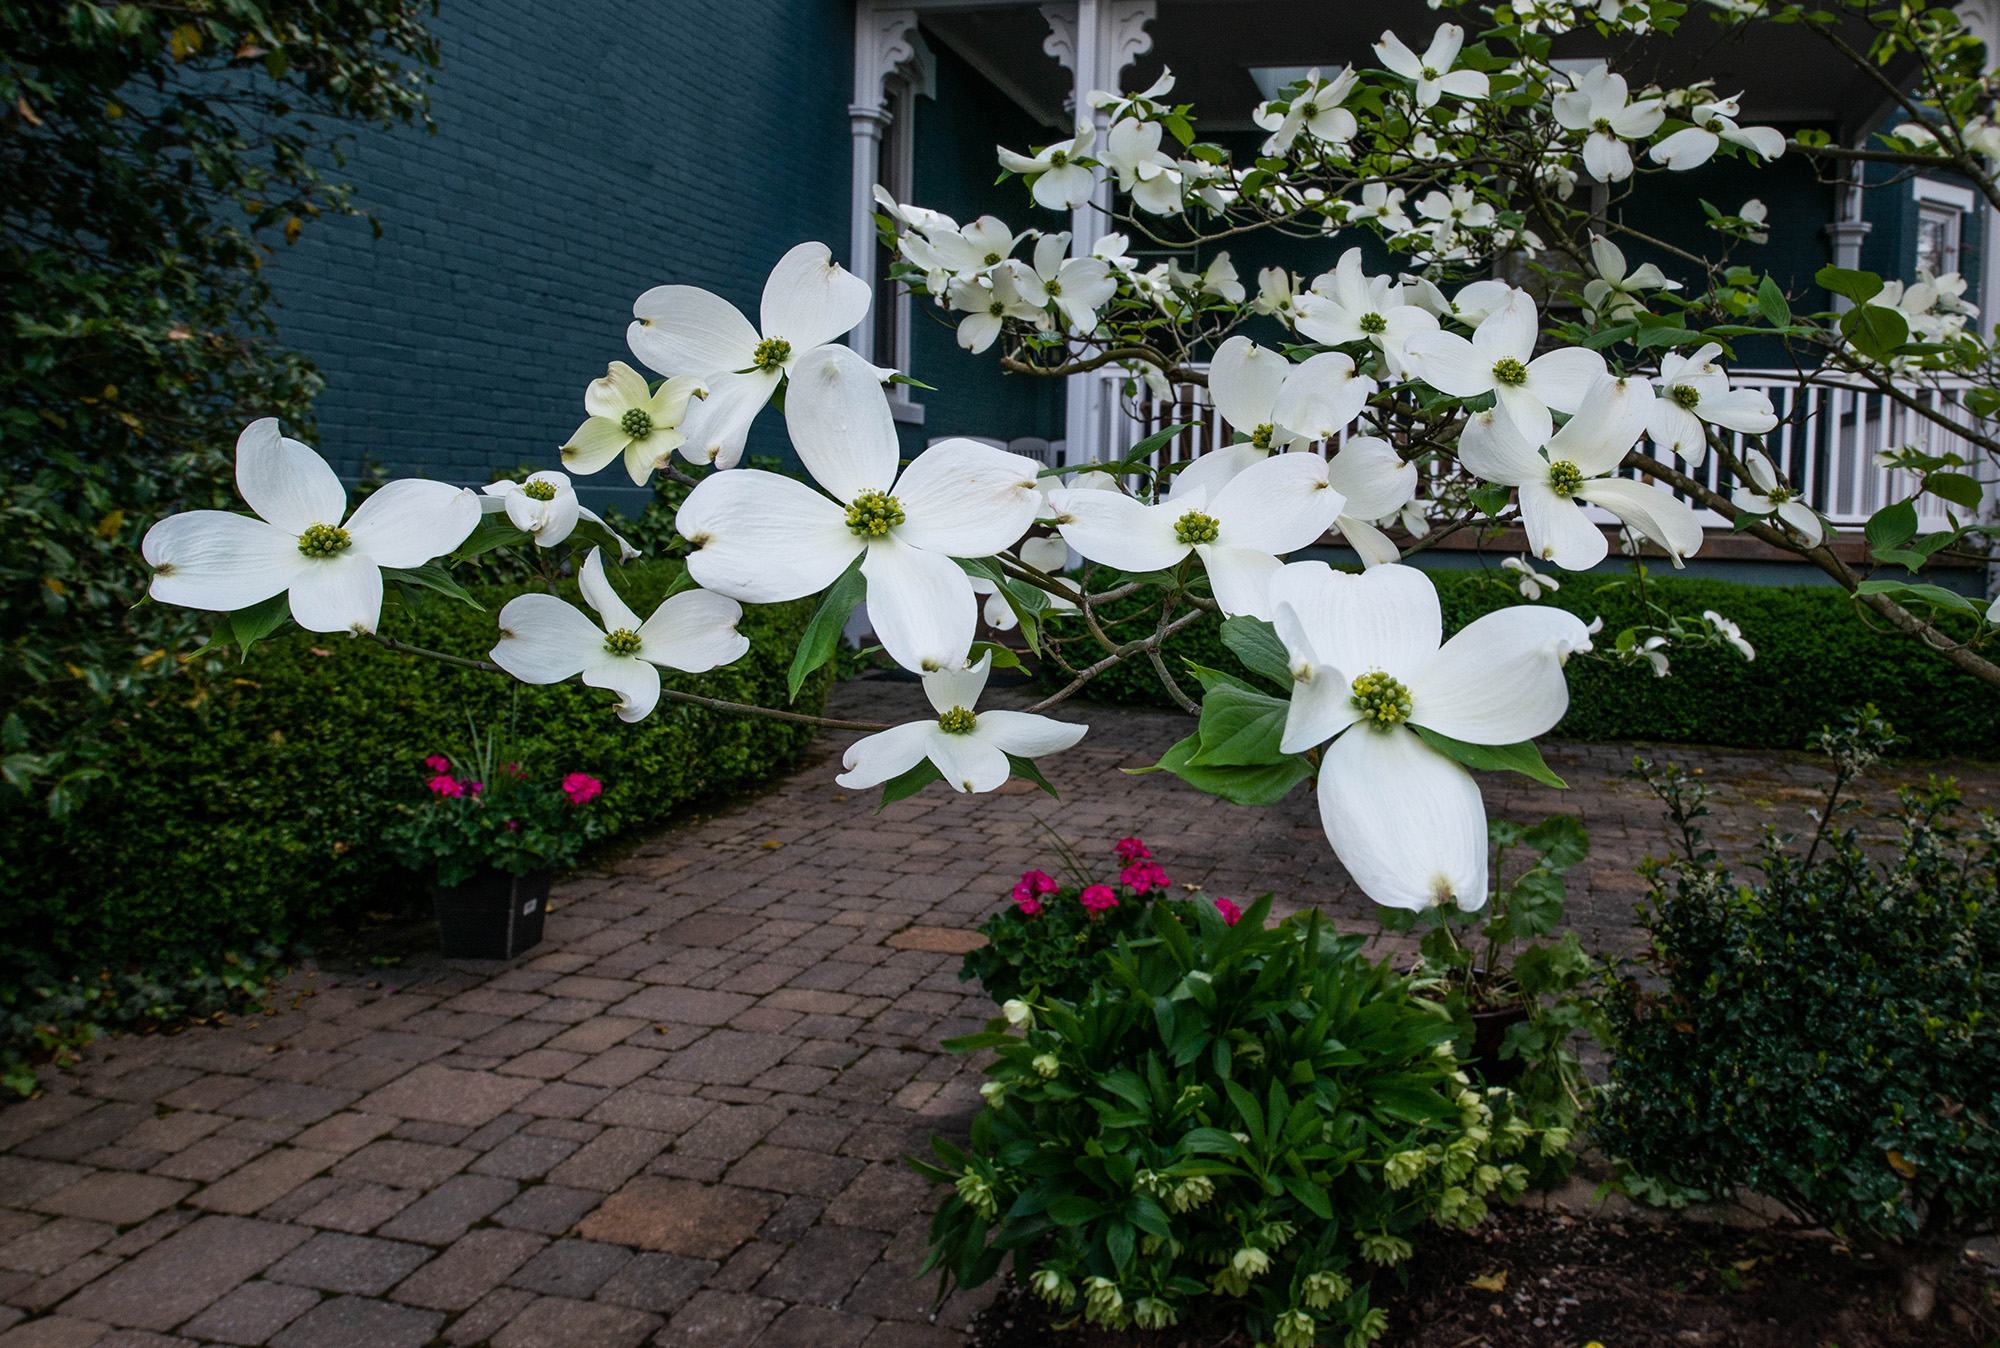 #spring, #dogwood, #whitedogwood, #backdoor, #pennsylvania, #sewickley, #may, #home